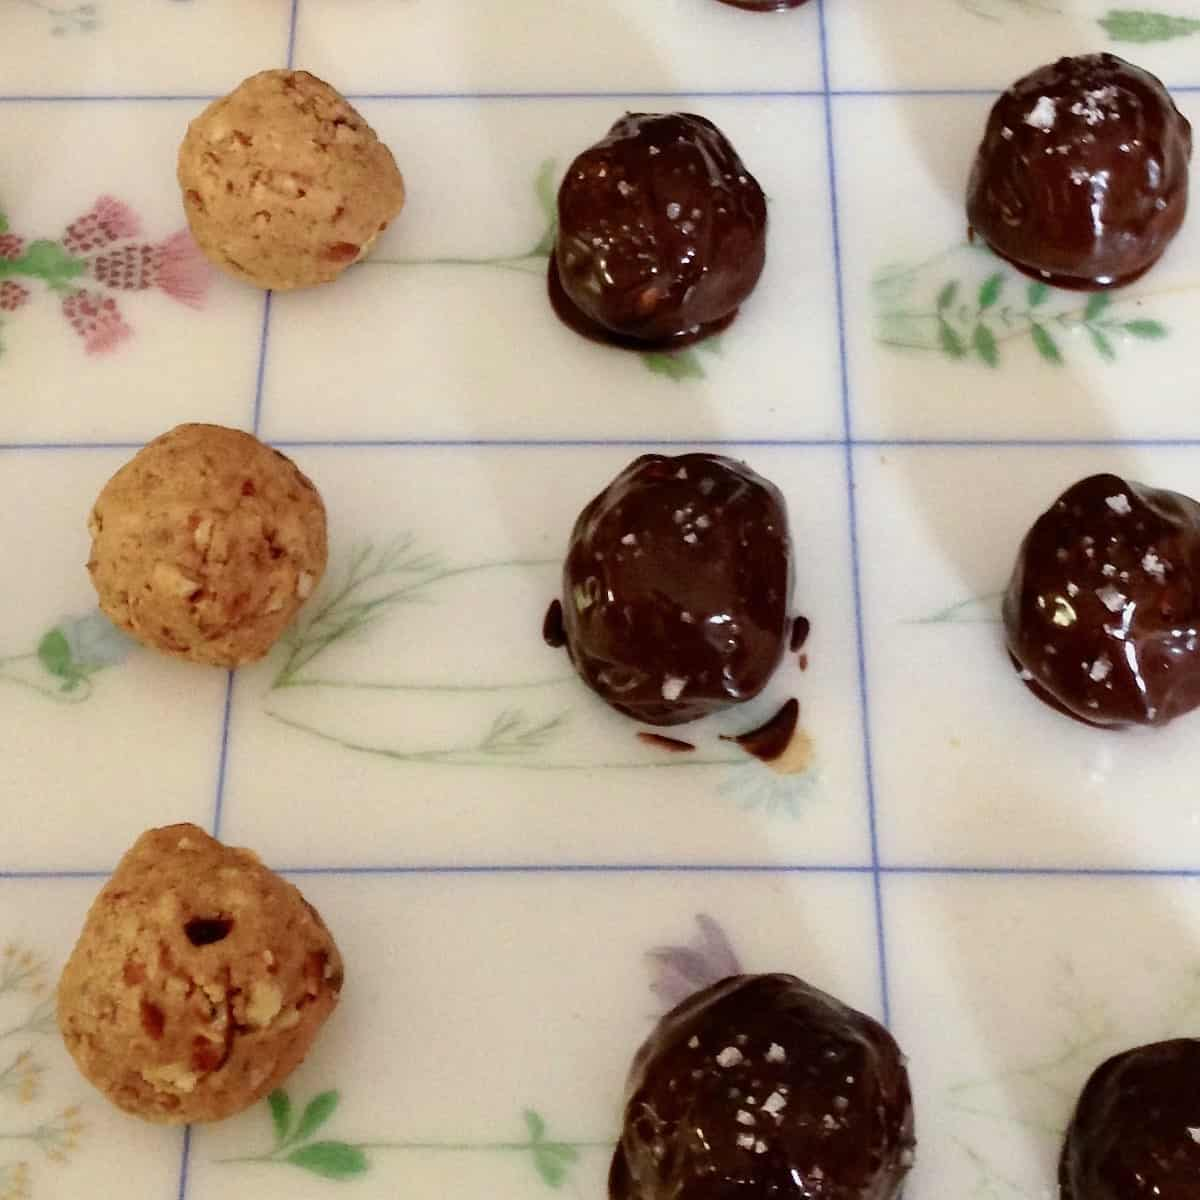 peanut butter pretzel balls before and after covered in chocolate